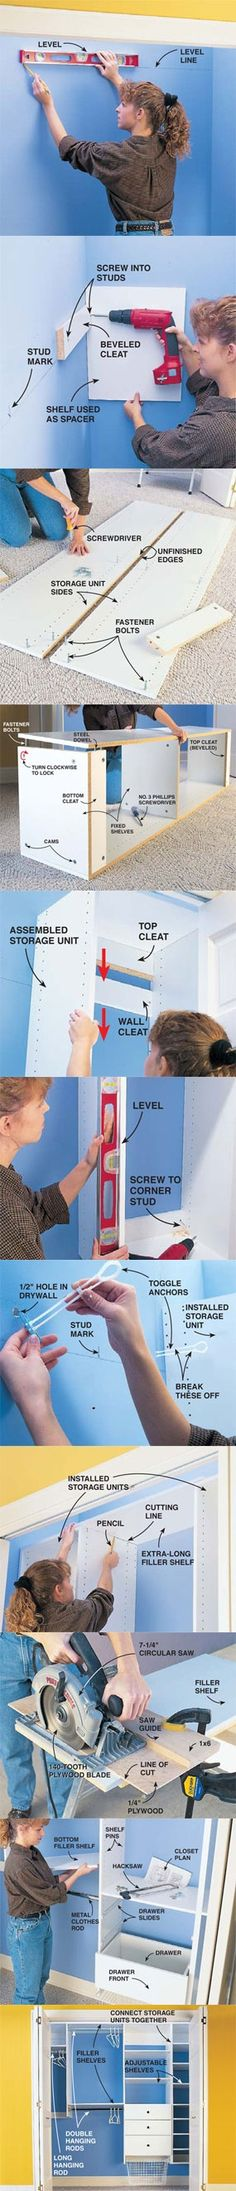 For the cost of a regular dresser, you can install a modular closet organizer and double your storage space with adjustable shelves, drawers and closet rods that look built-in. We'll show you how to build in this weekend at http://www.familyhandyman.com/DIY-Projects/Indoor-Projects/Bedroom/Closet-Organizer/how-to-organize-your-closet-custom-designed-closet-storage/View-All